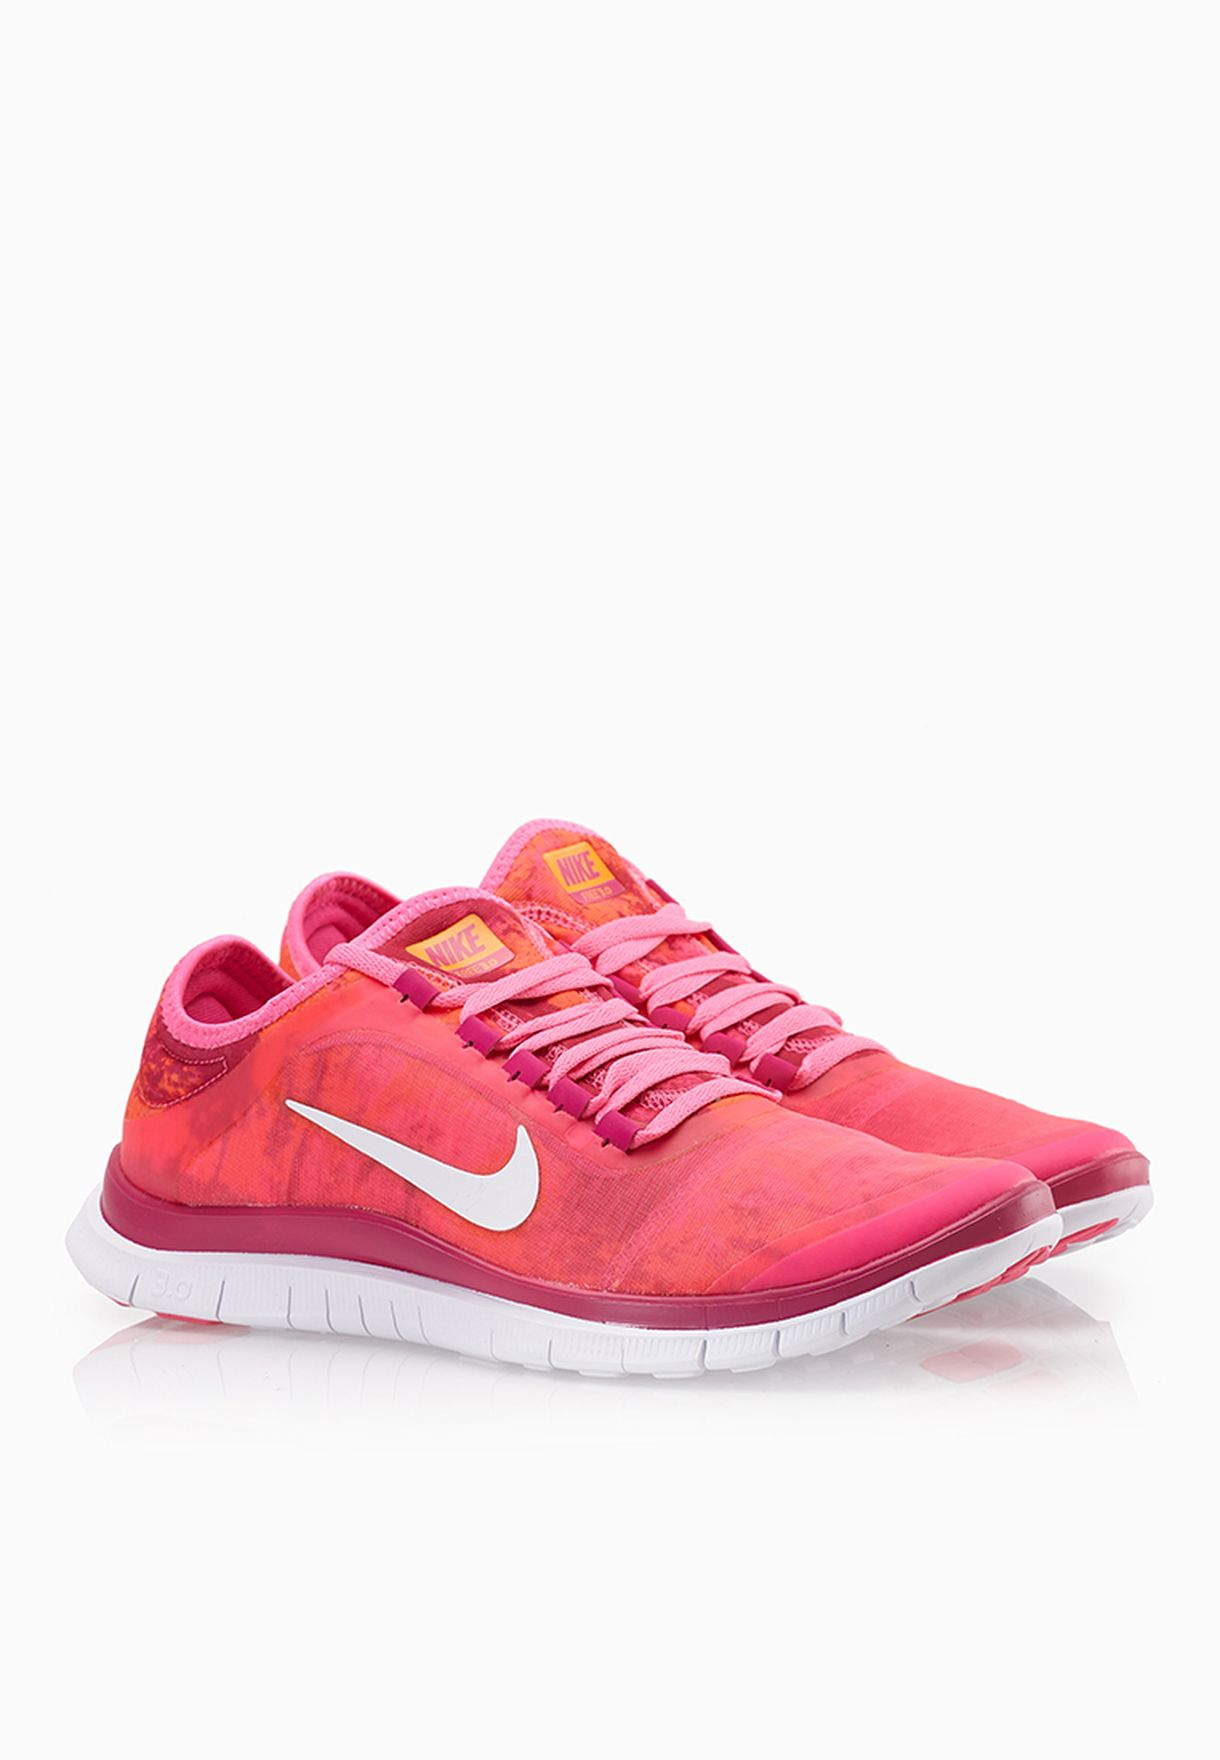 In Ext V5 3 Pink 601 Prnt Women For 0 Shop Sneakers 684797 Free Nike ASqfOf